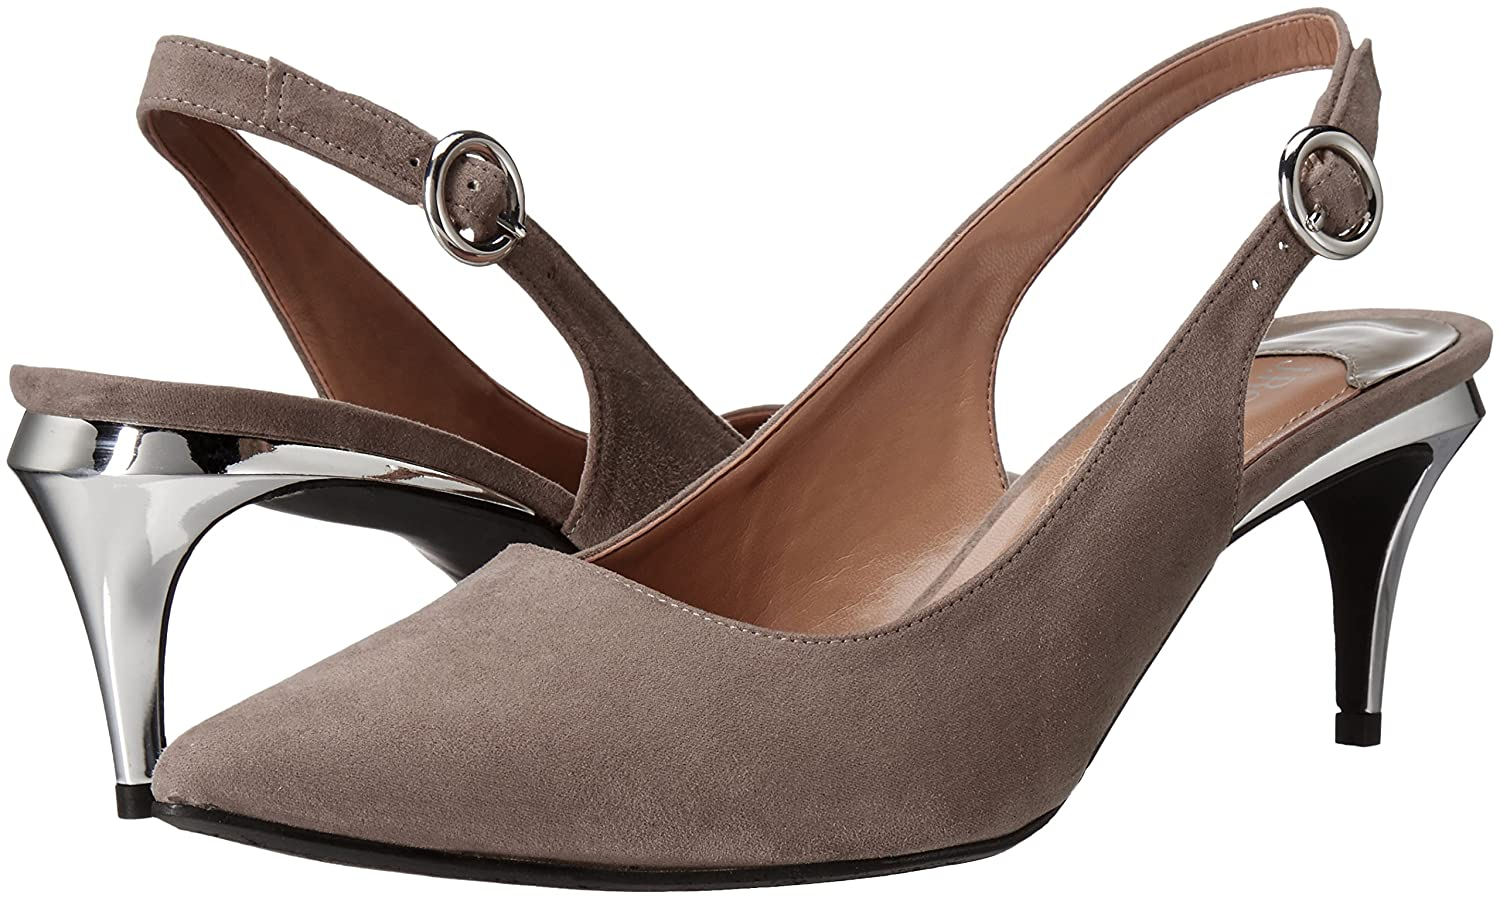 J.Renee Women's Pearla Dress Pump B01INJK1XU 7 W US|Gray Suede